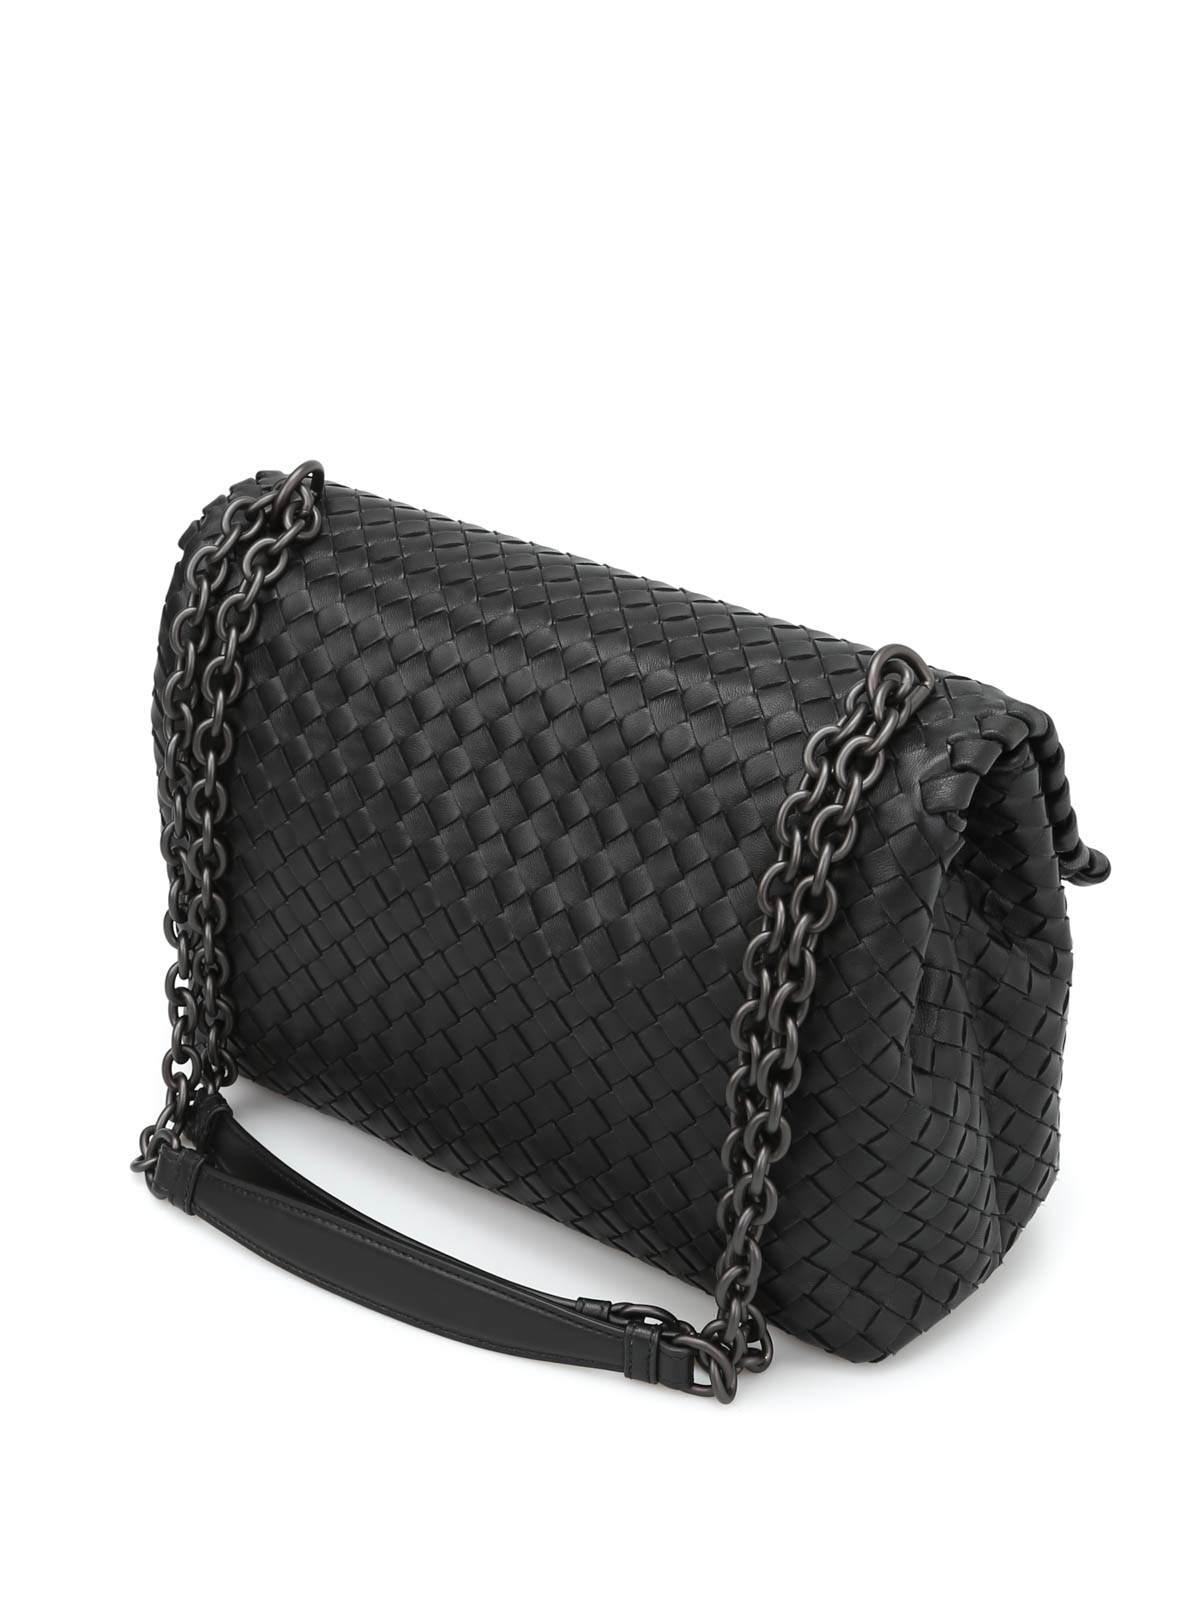 8616ffca72 iKRIX BOTTEGA VENETA  shoulder bags - Medium Olympia cross body bag